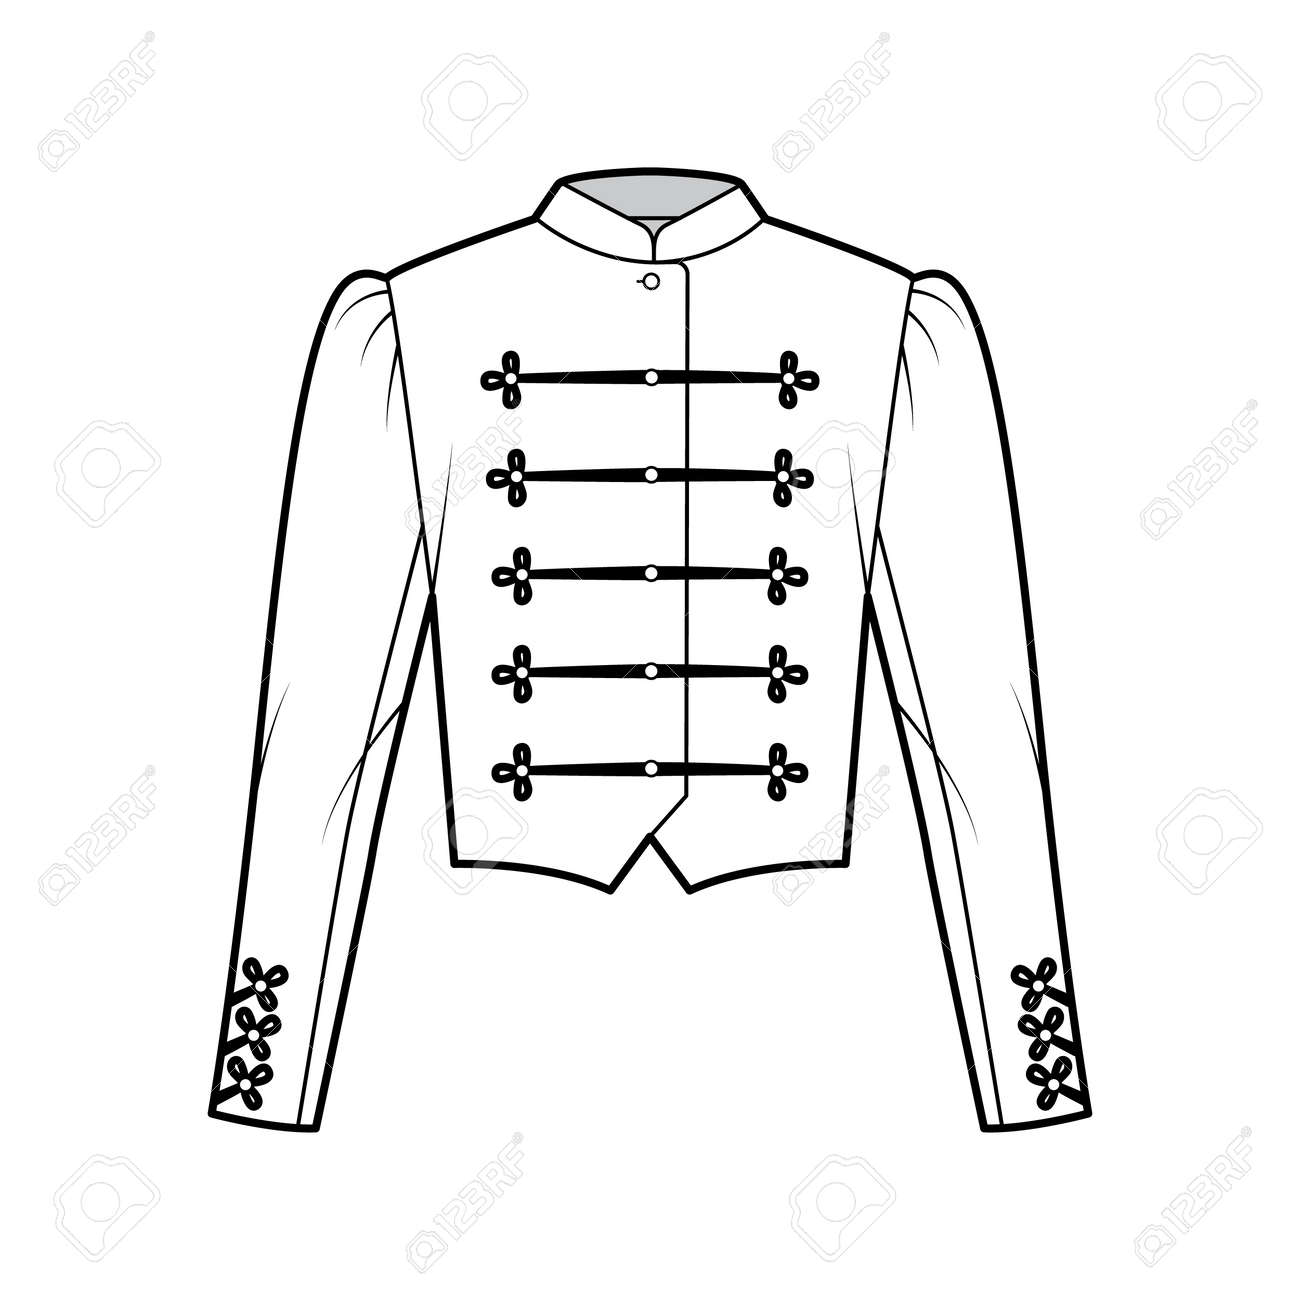 Majorette jacket technical fashion illustration with crop length, long leg o Mutton sleeves, stand collar, button frog closure. Flat blazer template front, white color style. Women, men CAD mockup - 166631613